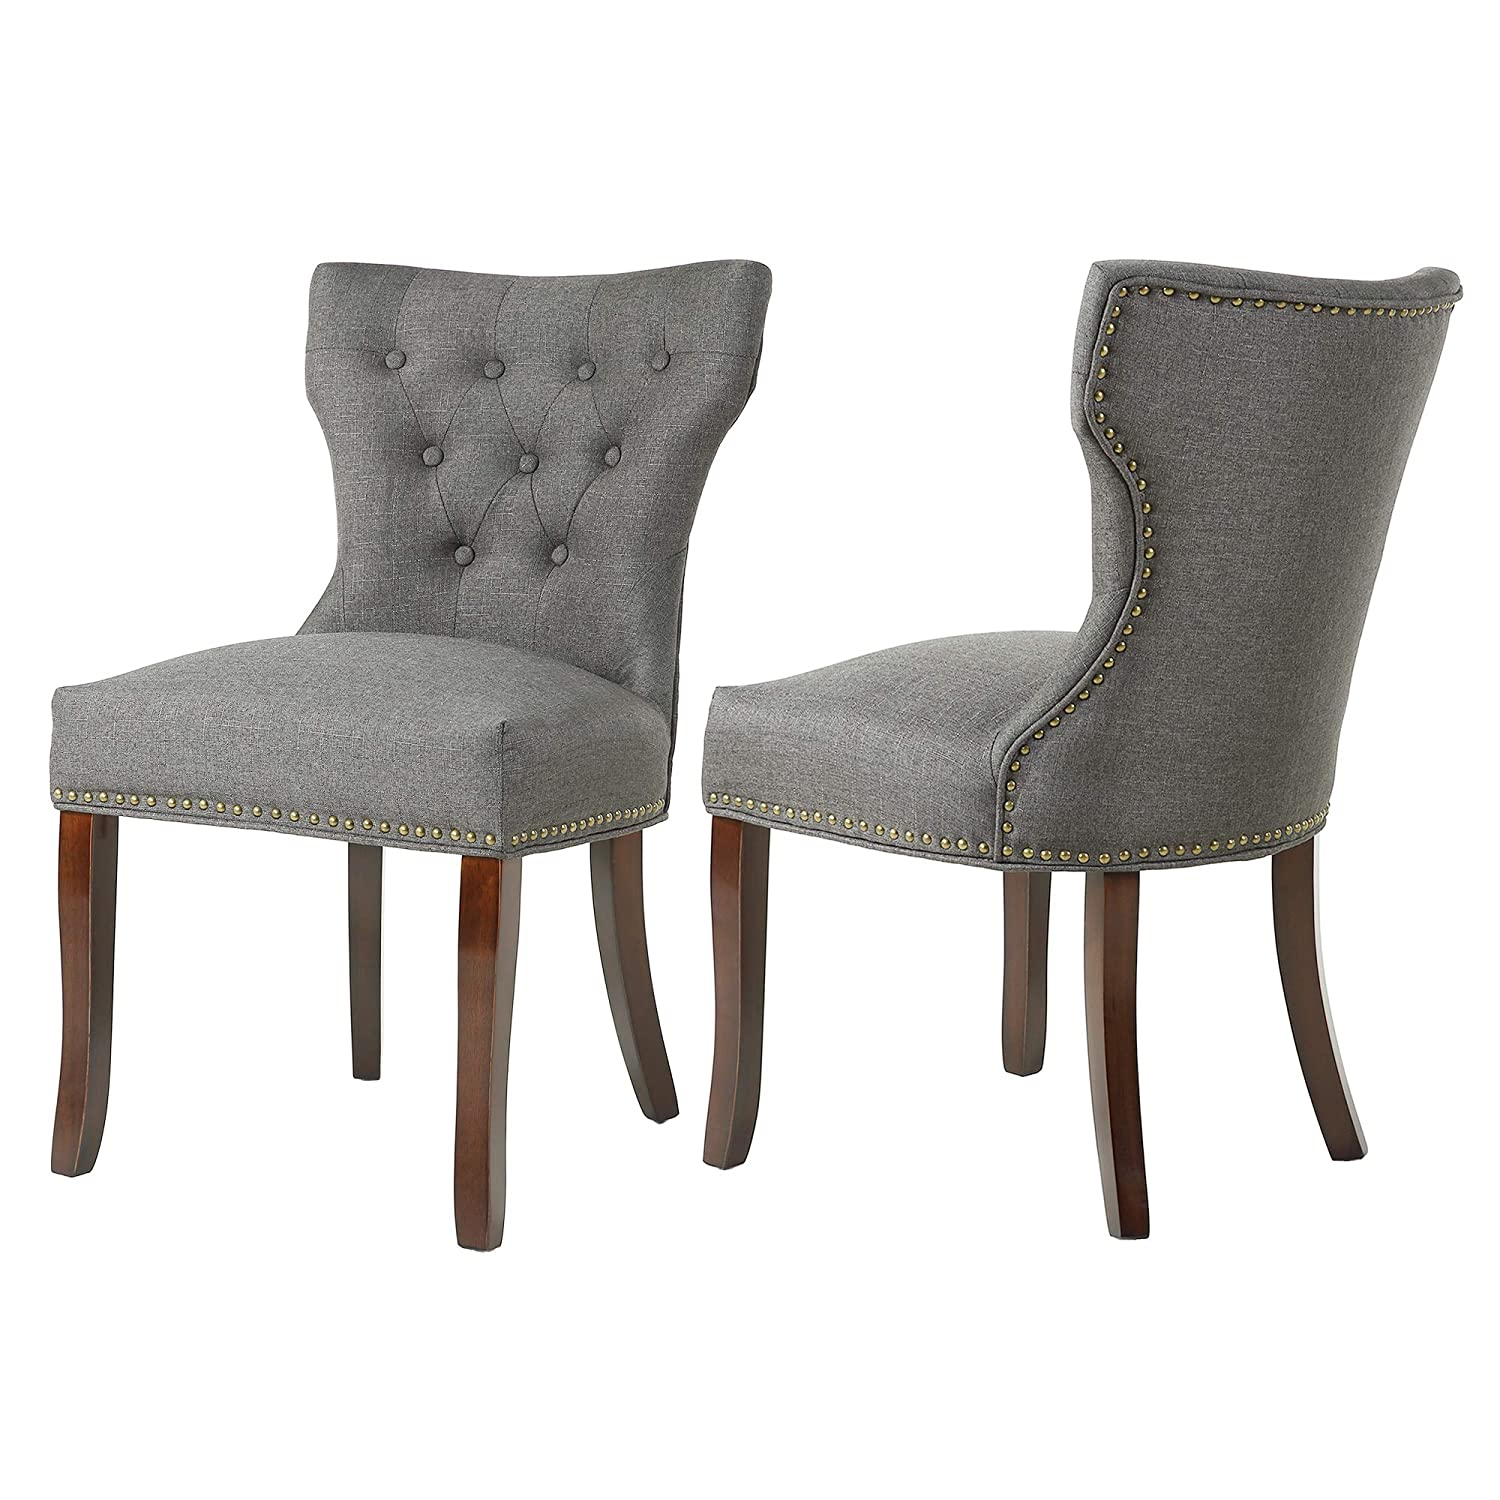 DAGONHIL Fabric Dining/Accent Chairs (Set of 2) with Brown Solid Wooden Legs,Nailed Trim, (Charcoal Gray)